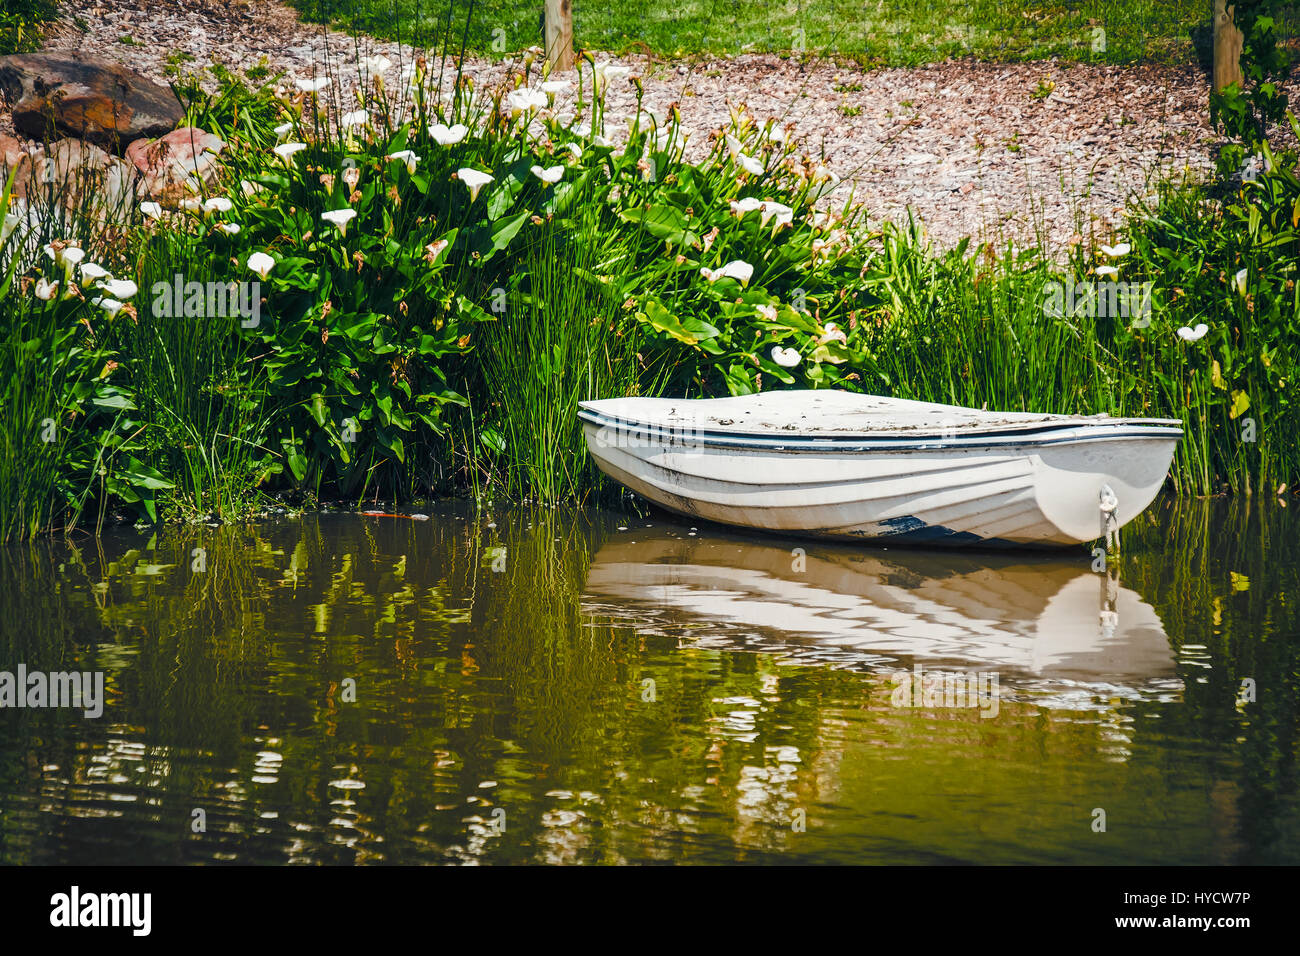 Old boat anchored in the pond - Stock Image